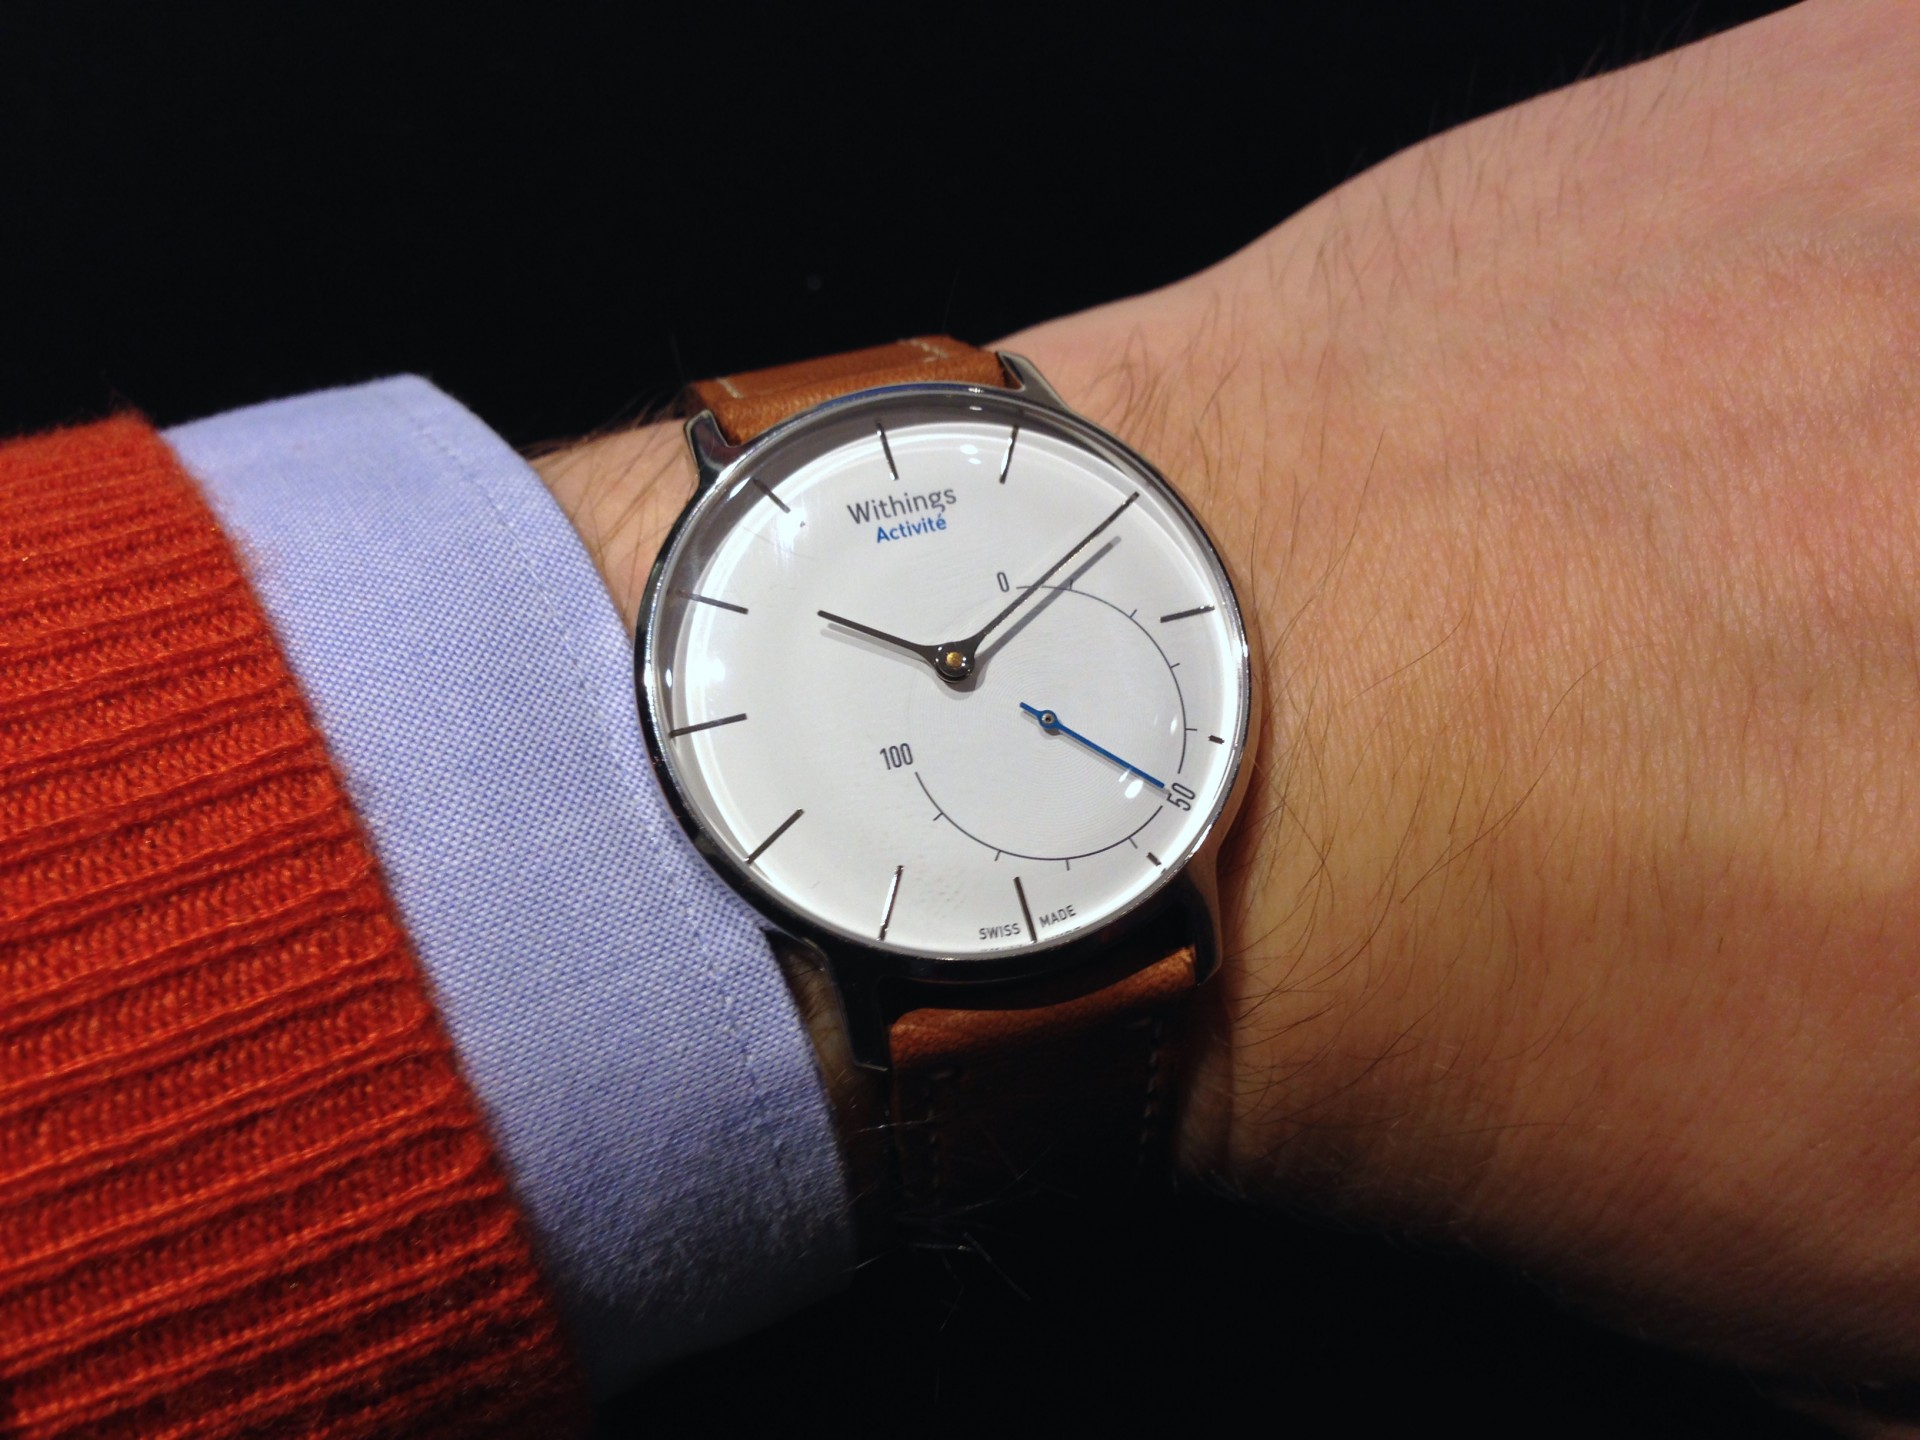 Withings Activité is a Slightly Smarter Watch: Is It Smart Enough?